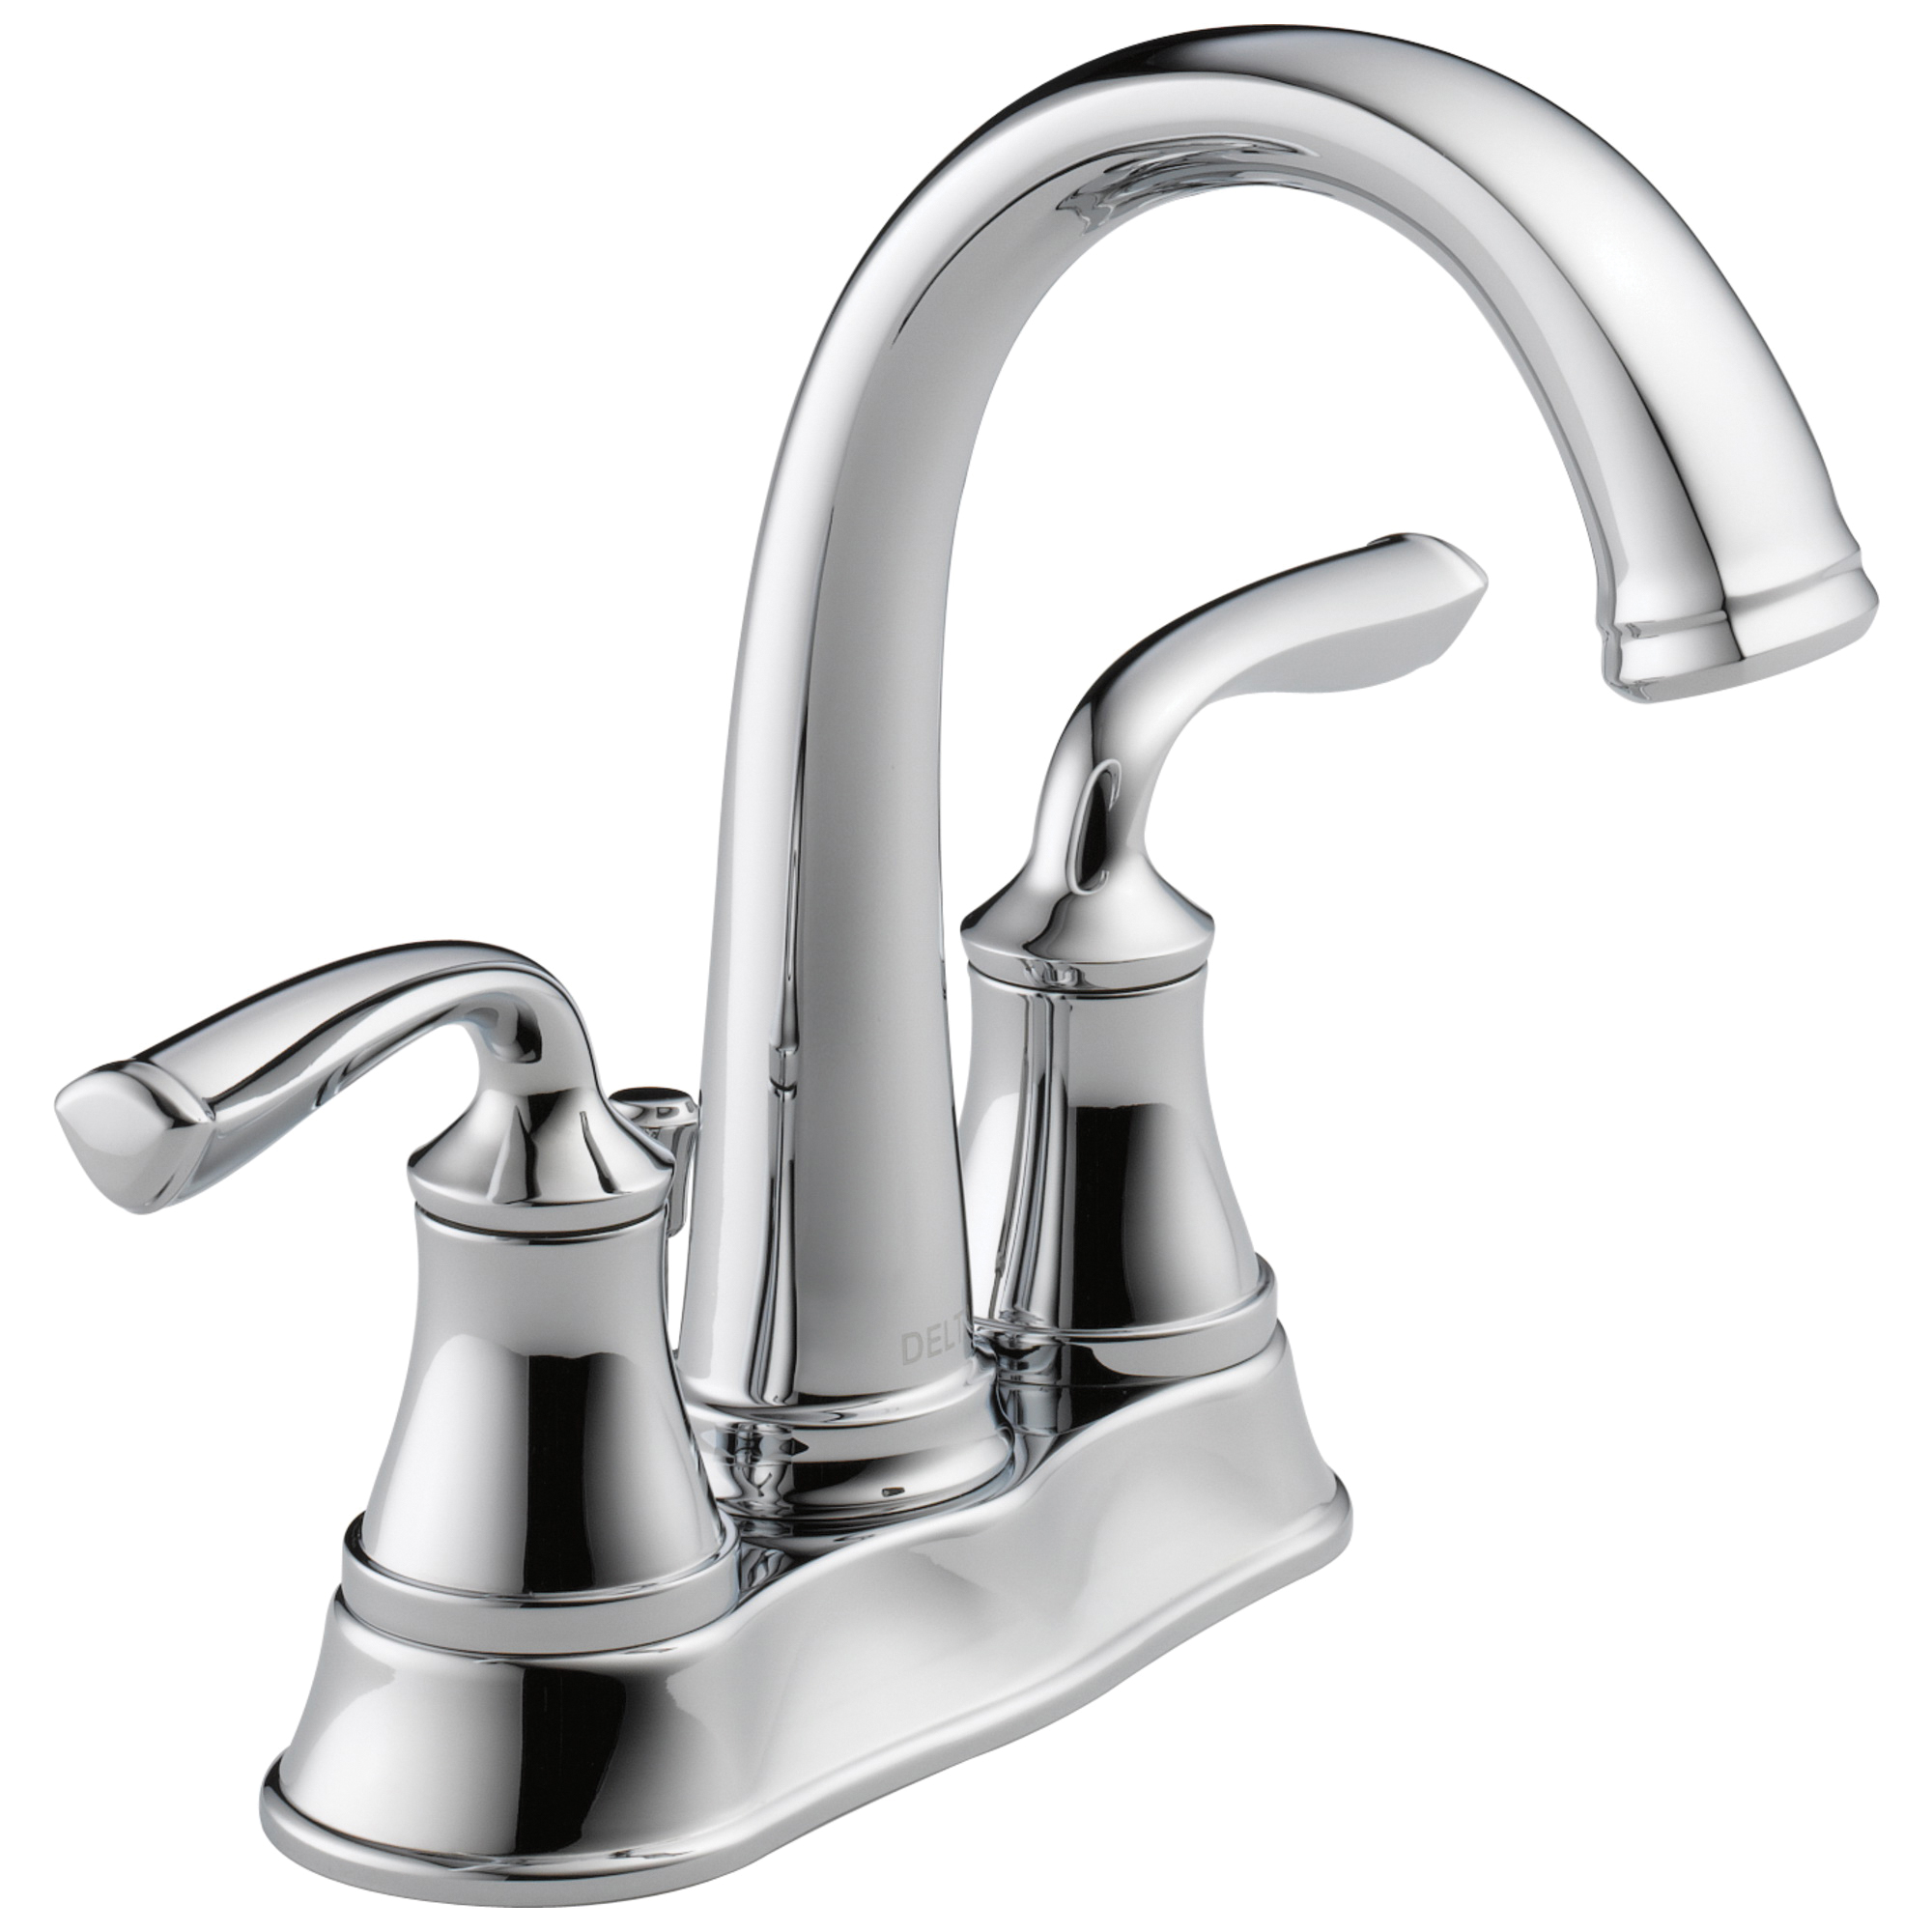 DELTA® 25716LF-ECO Centerset Bathroom Faucet, Lorain®, Chrome Plated, 2 Handles, Plastic Pop-Up Drain, 1.2 gpm